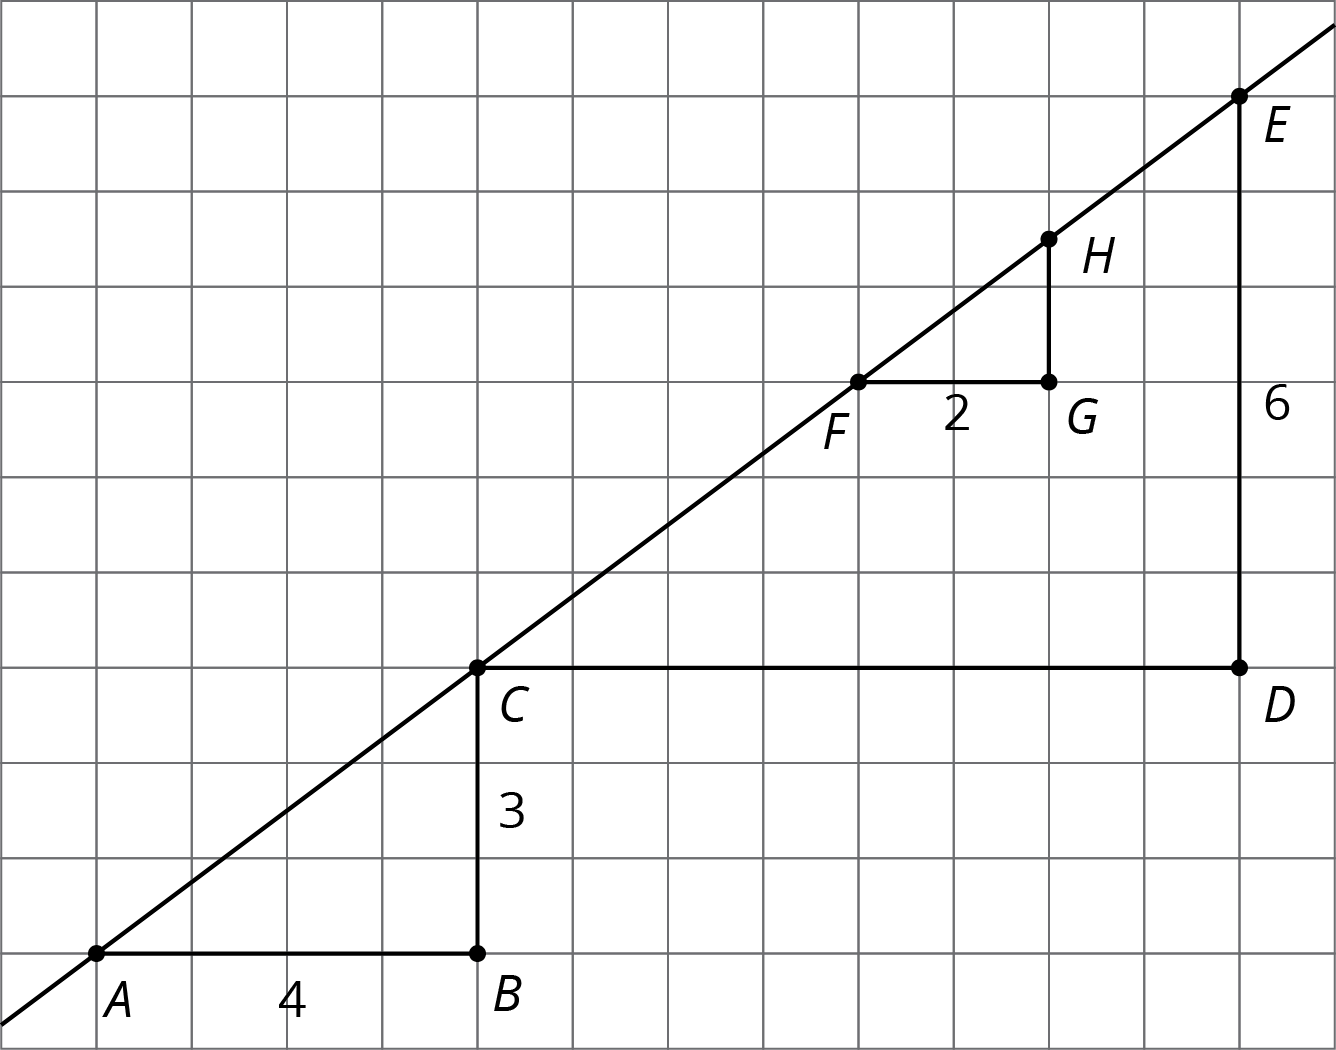 worksheet Slope Triangles Worksheet grade 8 unit 2 10 open up resources similar triangles on the same line